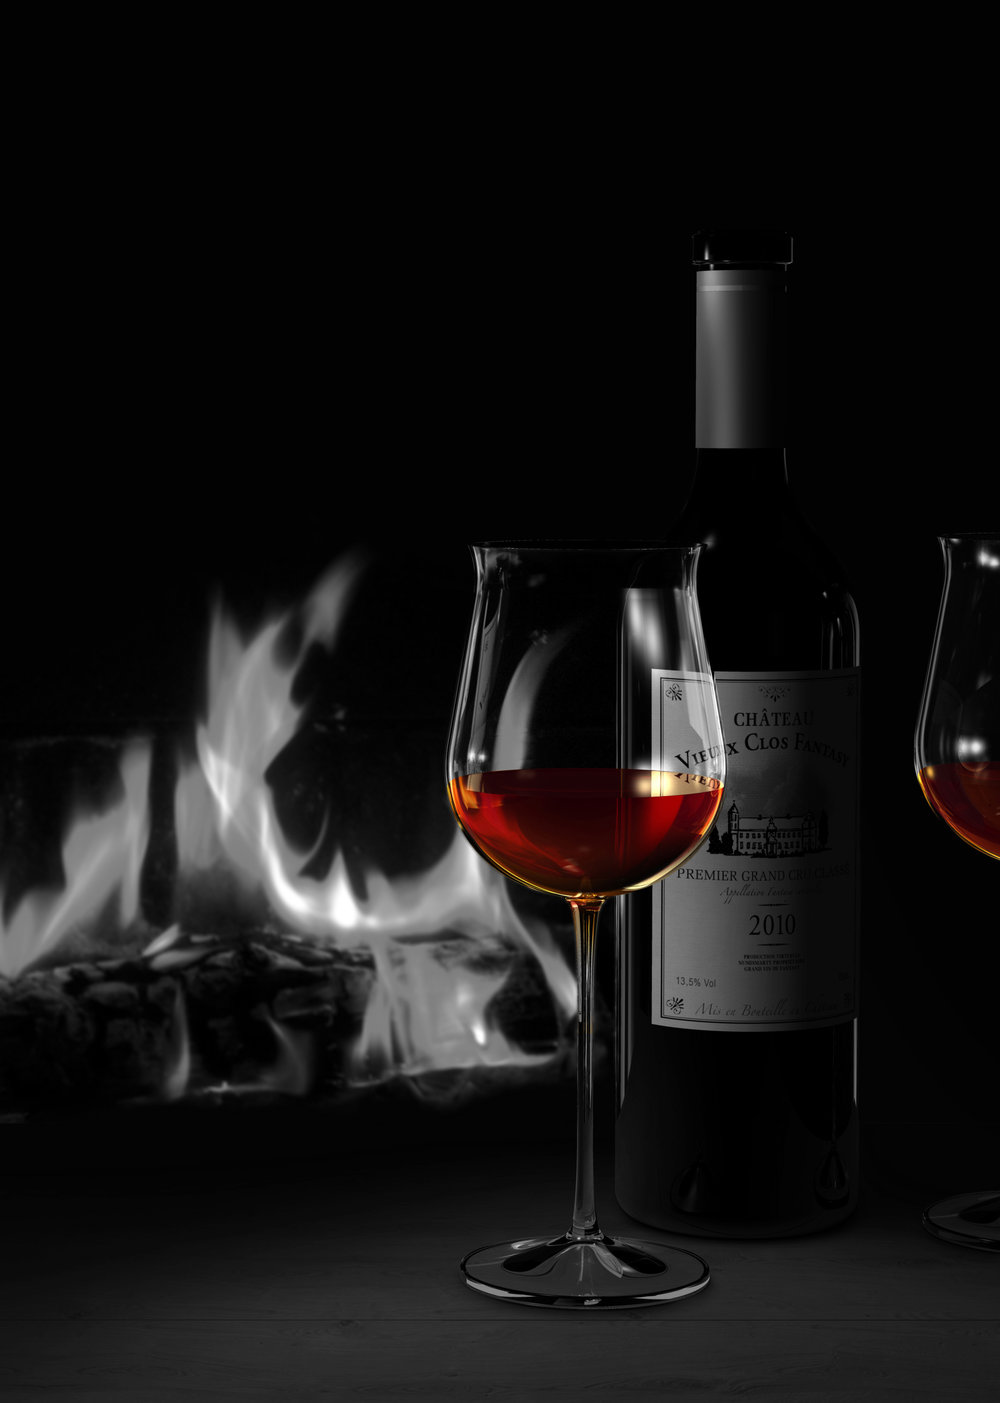 Stylish, luxury and designer wine glasses - Luxury range of wine glasses featuring hand made and machine made options for an enhanced aesthetic to your drinking experience.